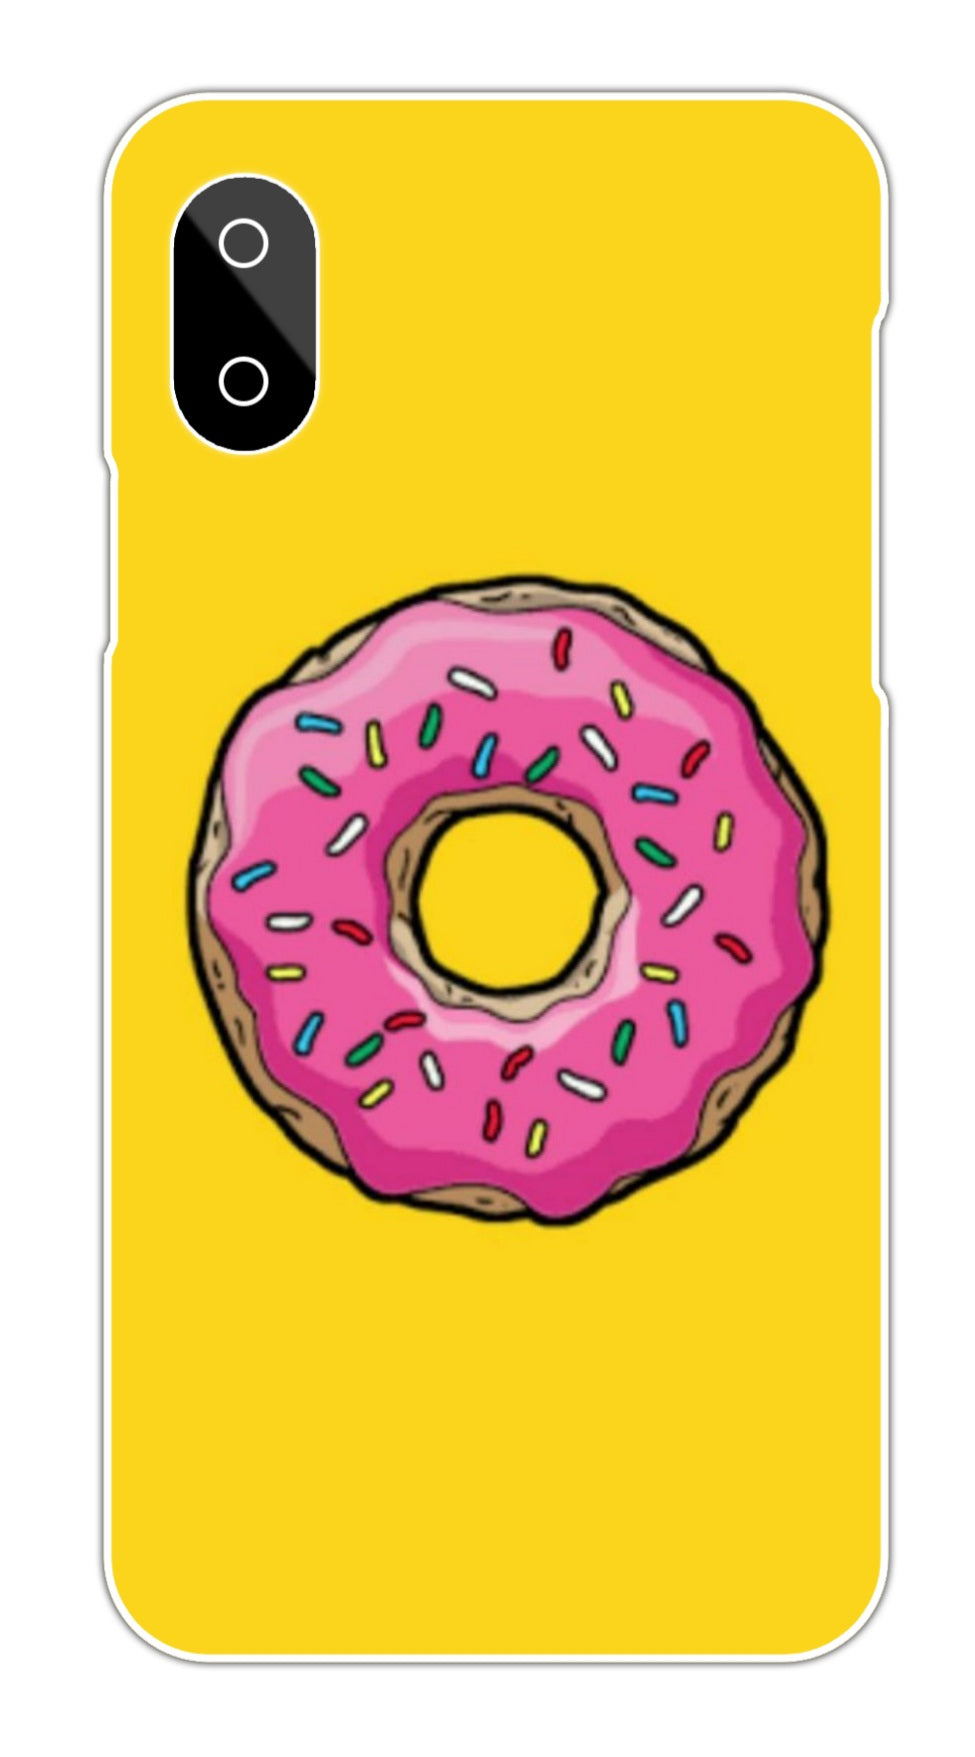 DONUT DESIGN CASE